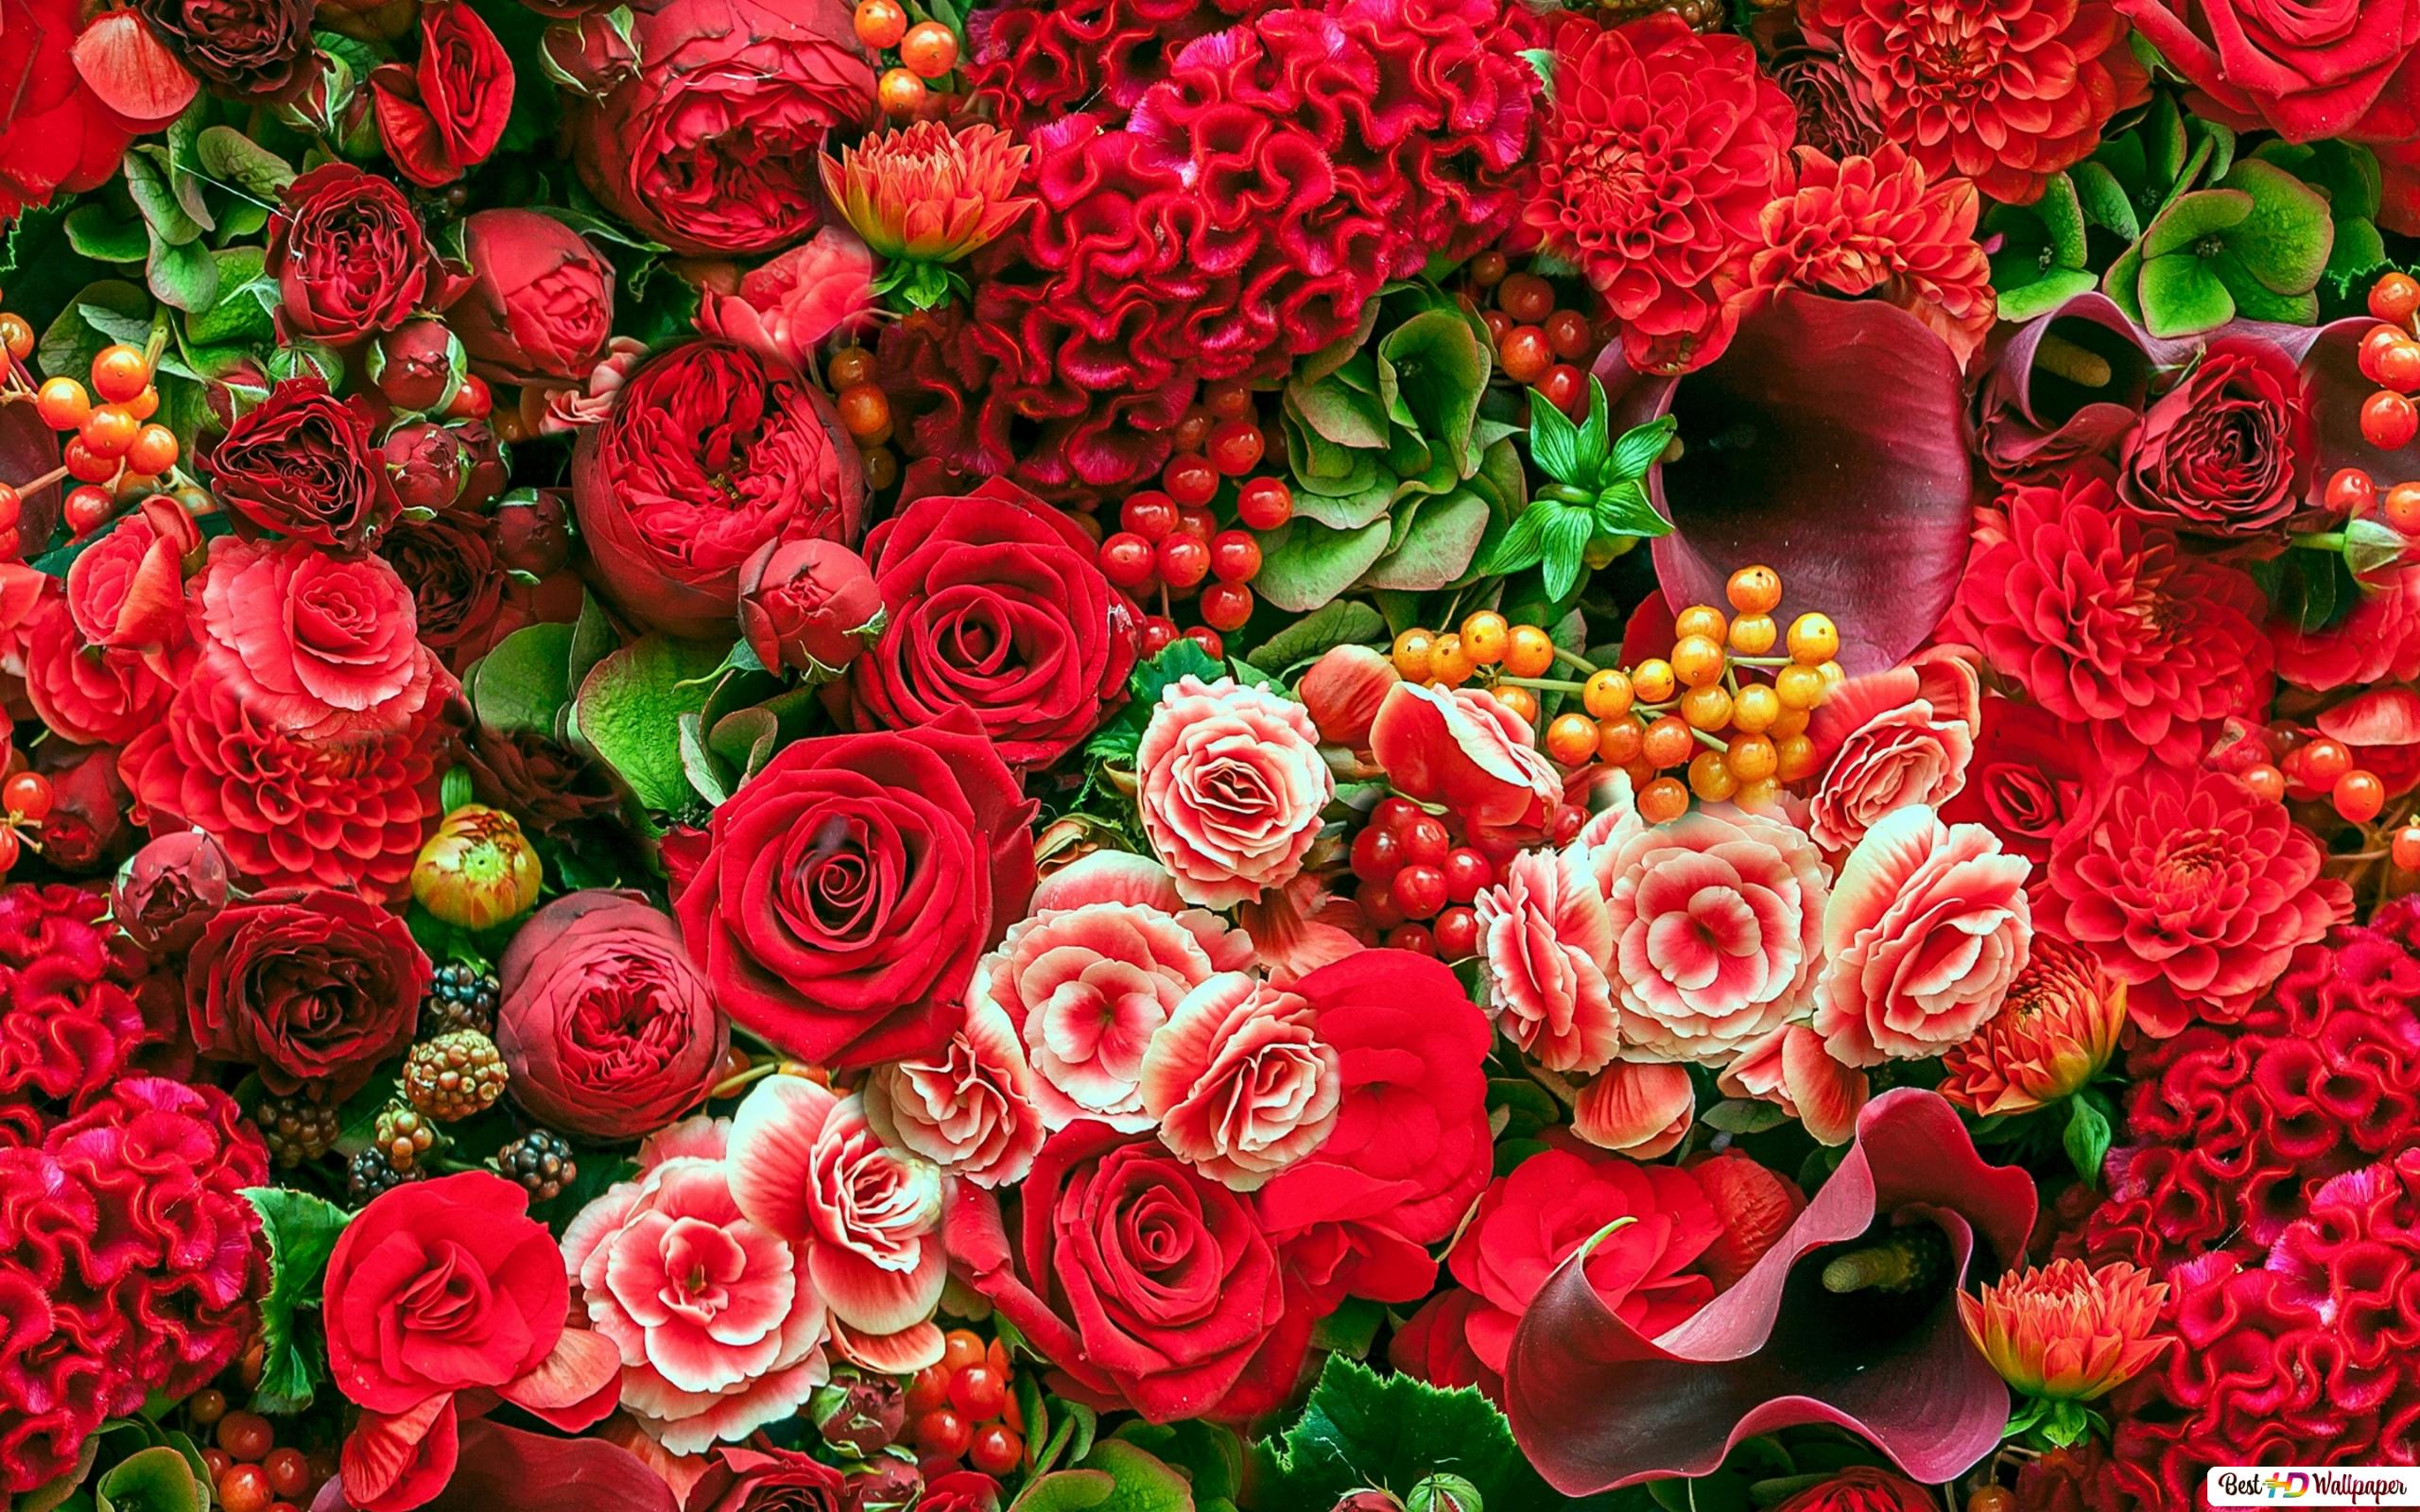 Colorful red flowers hd wallpaper download - Rose flower images full size hd ...